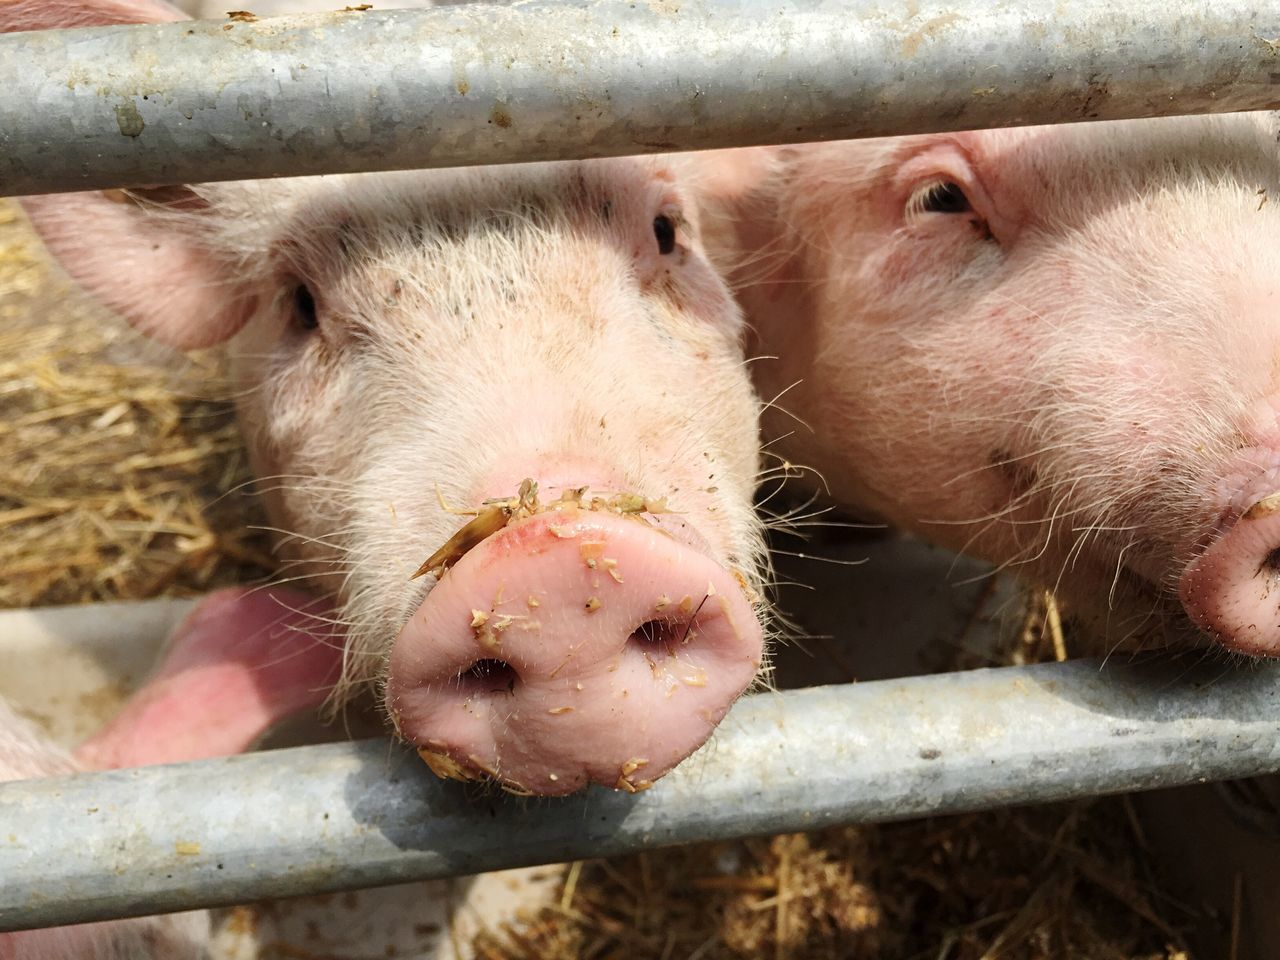 Pig Piglet Animal Animals Little Little Piglet Young Young Animal Snout Muzzle Nose Pink Rosé Farm Look Sweet Pigsty Stall Pig Stall Chow Feeding  Feeding Animals Feed  Bait